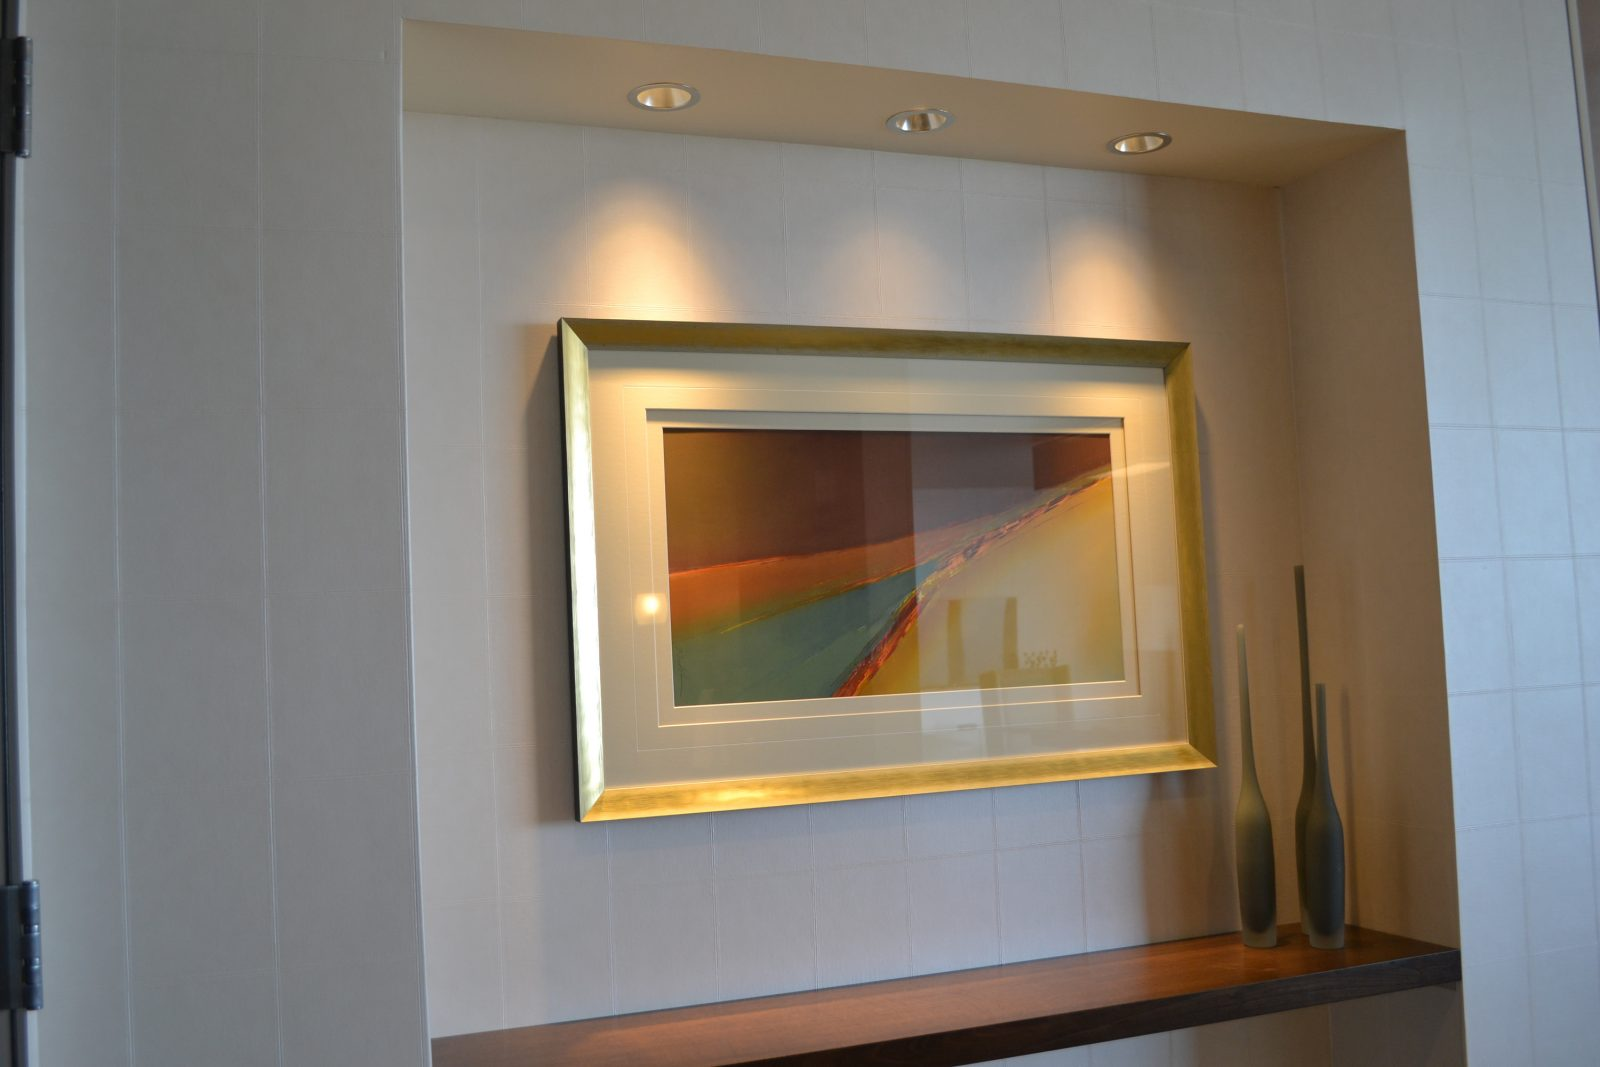 framed artwork on the wall of an office building